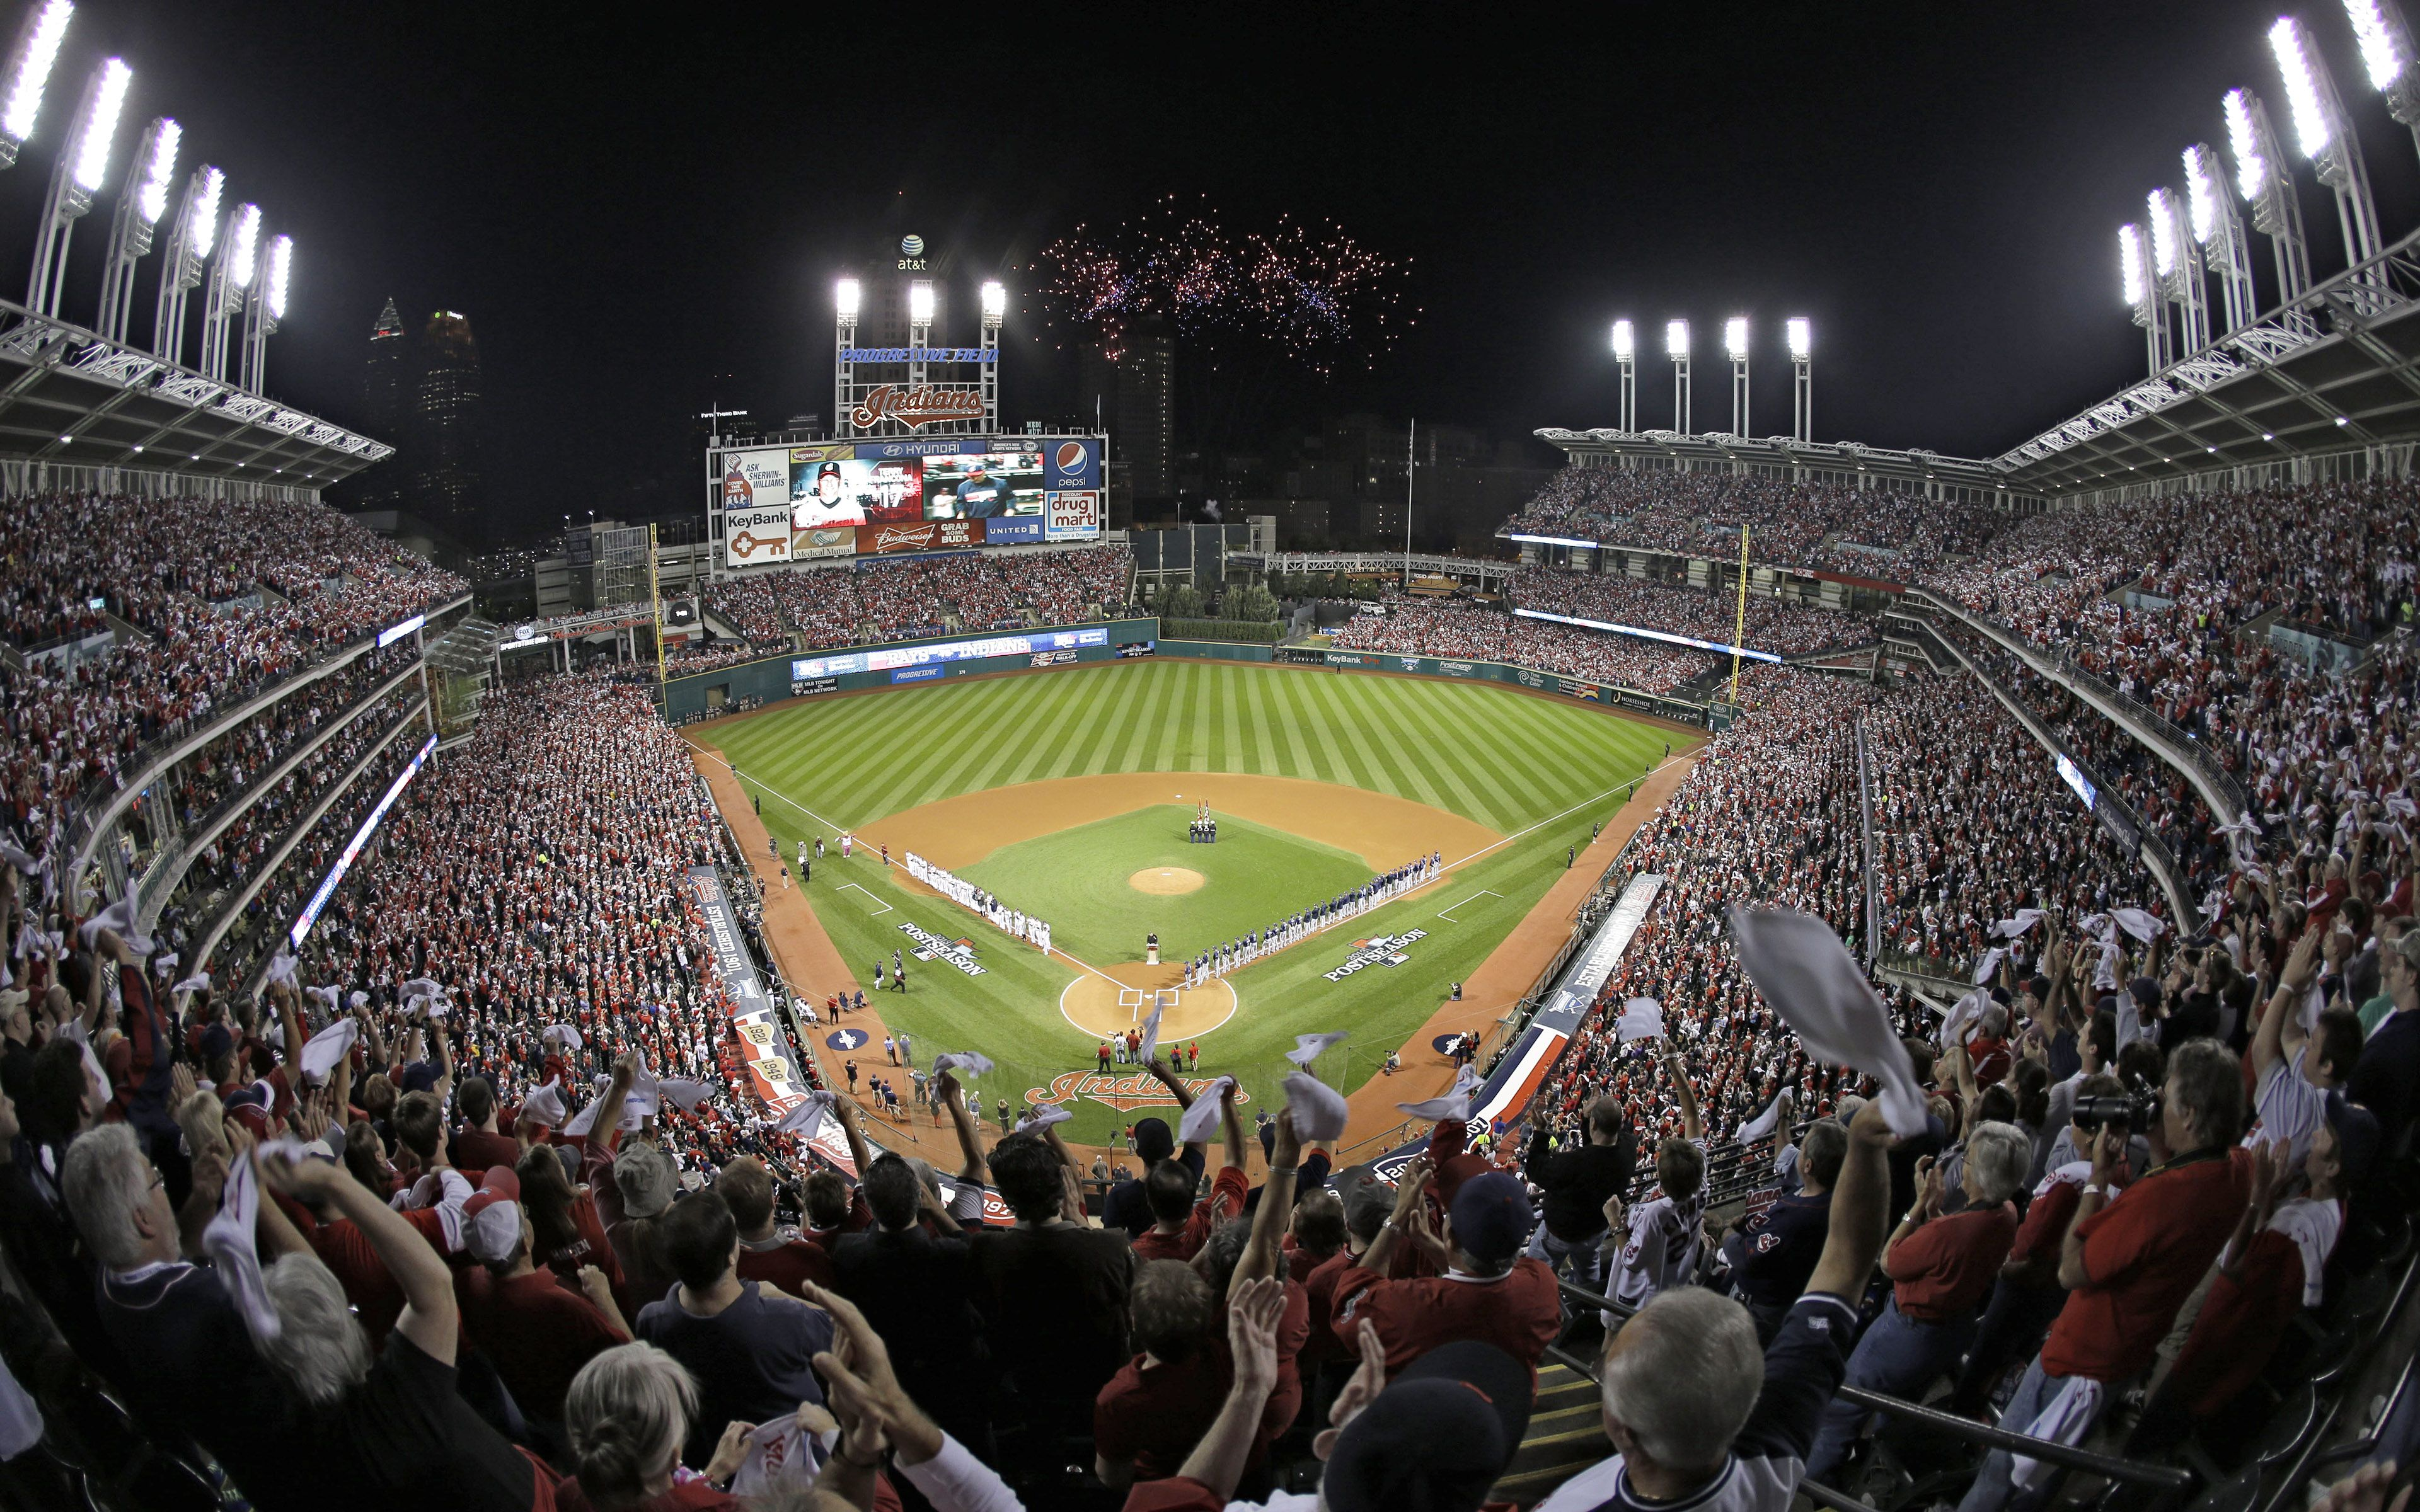 Pin By Zach Wolfe On Journalism 175 Red Sox Tickets Baseball Cleveland Indians